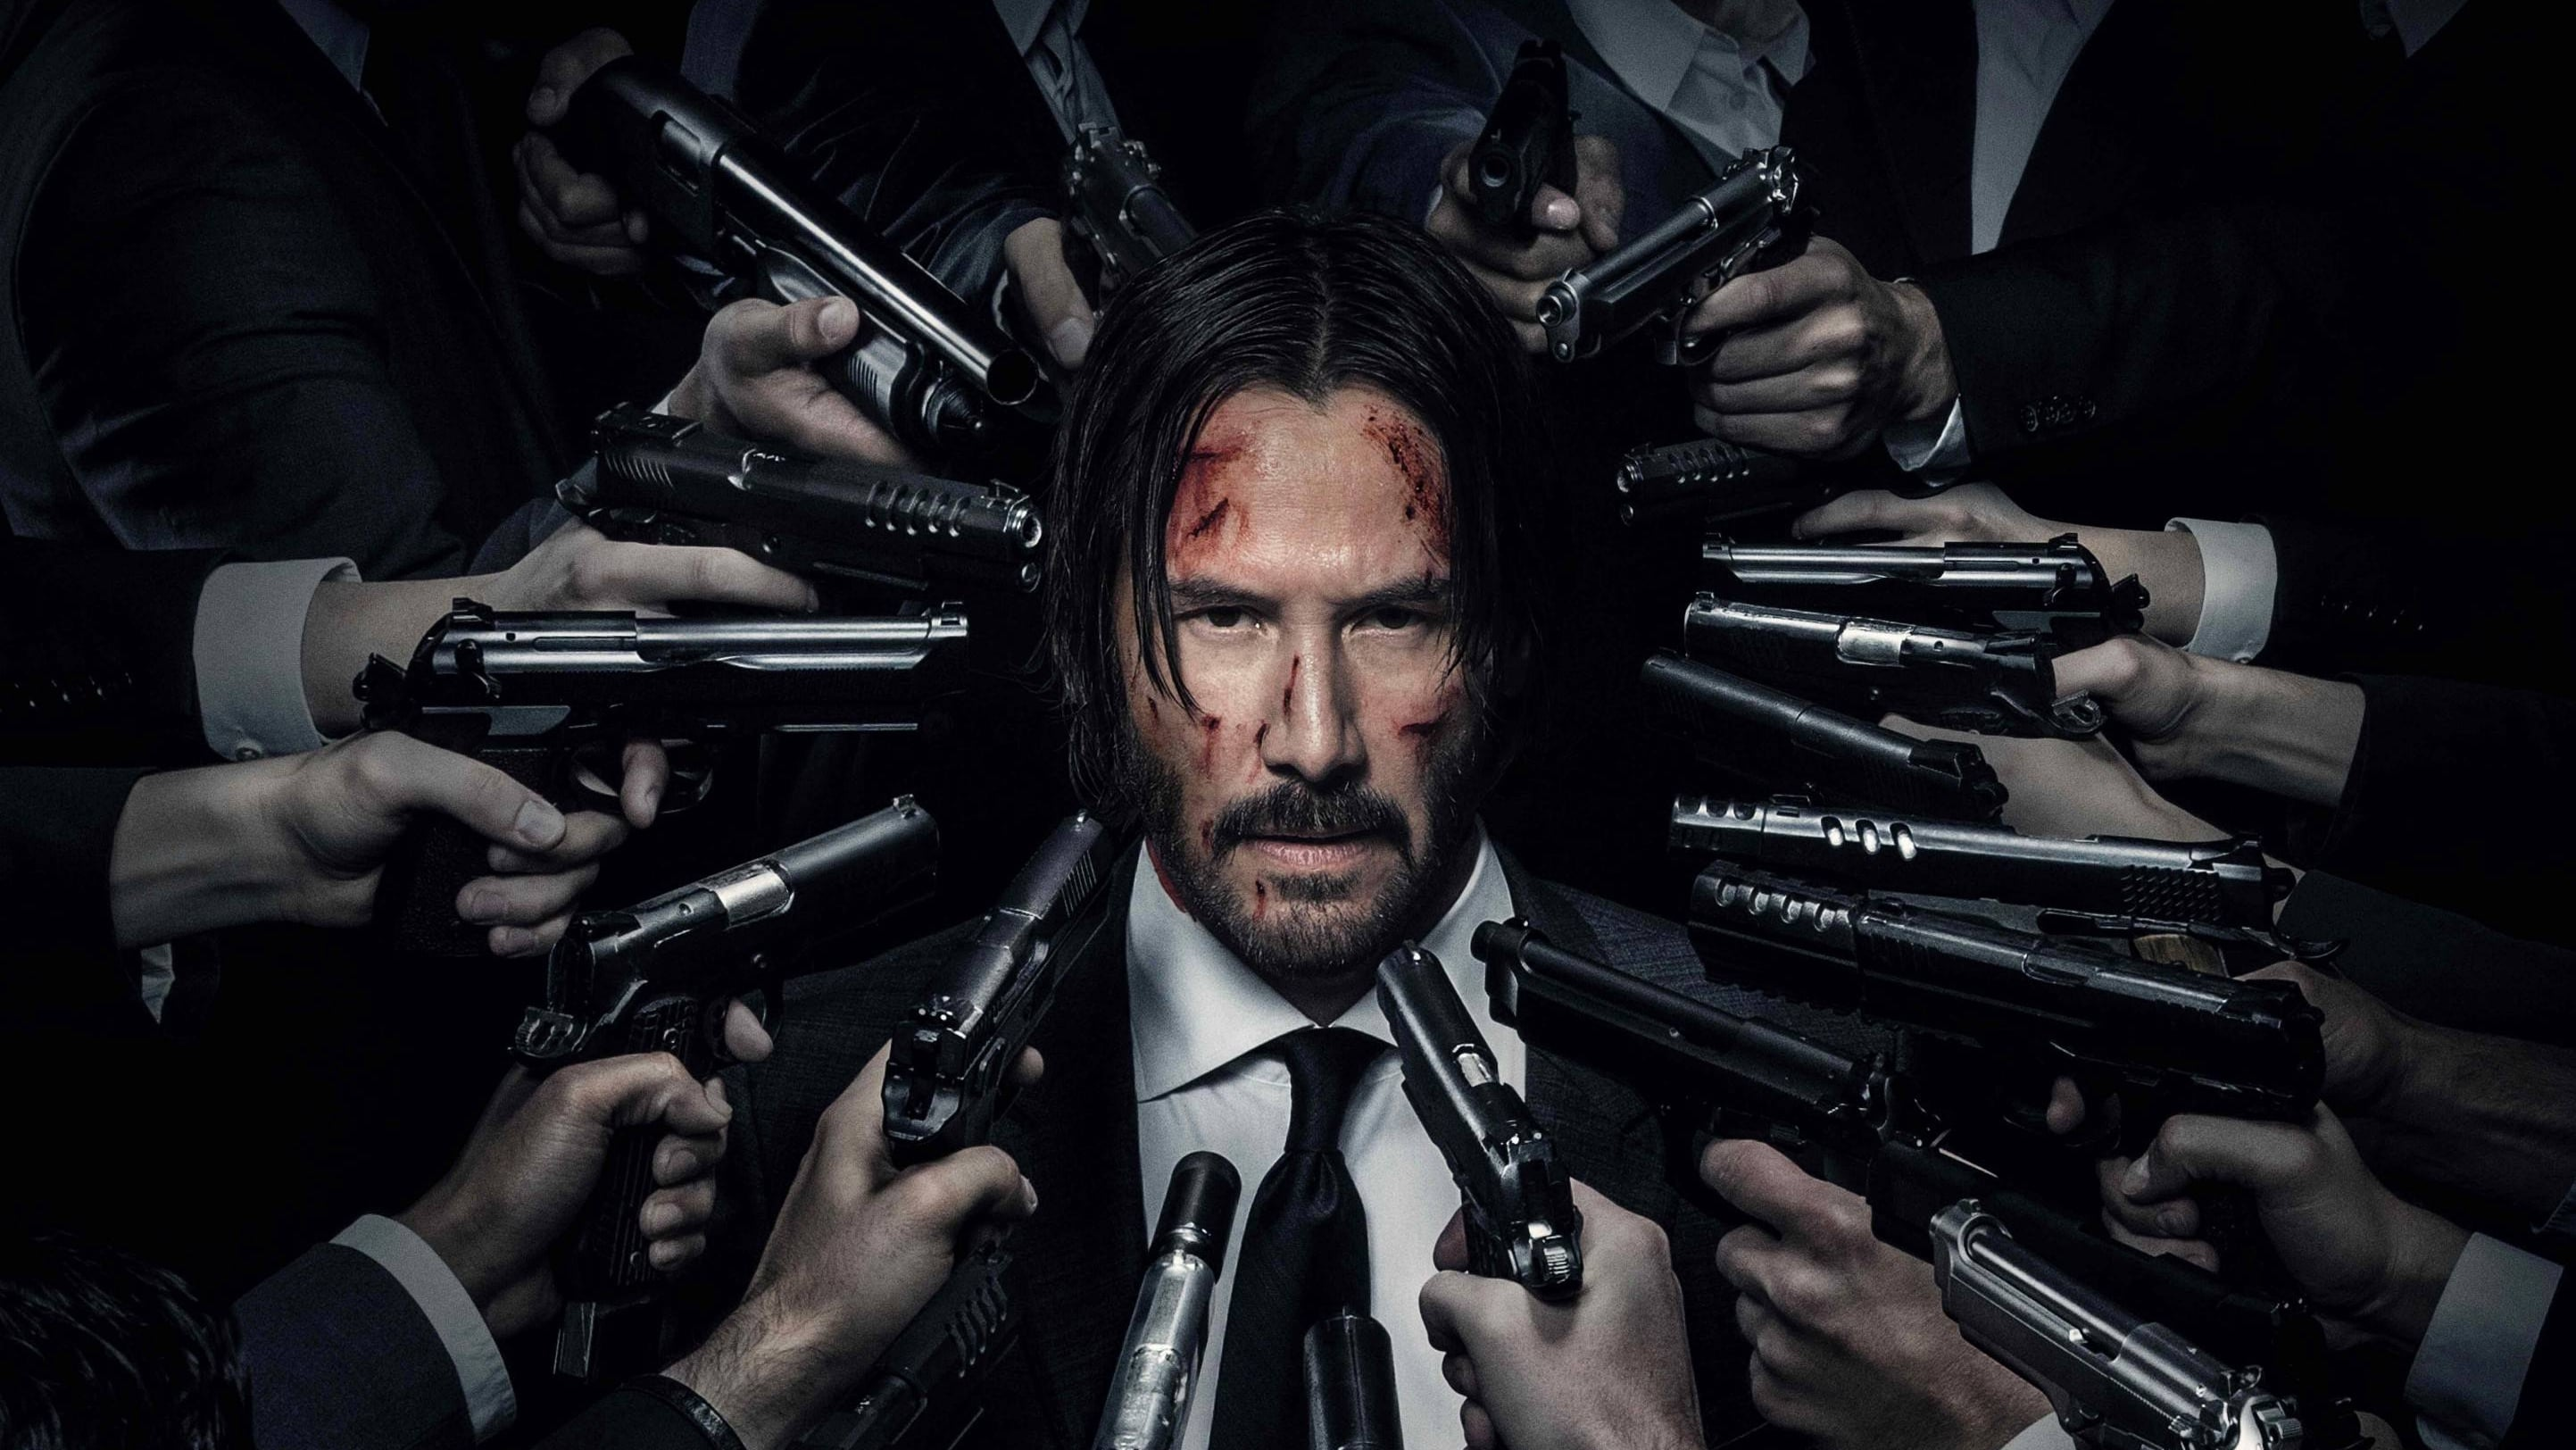 John Wick: Chapter 2 (2017) 1080p BrRip x264 - YIFY